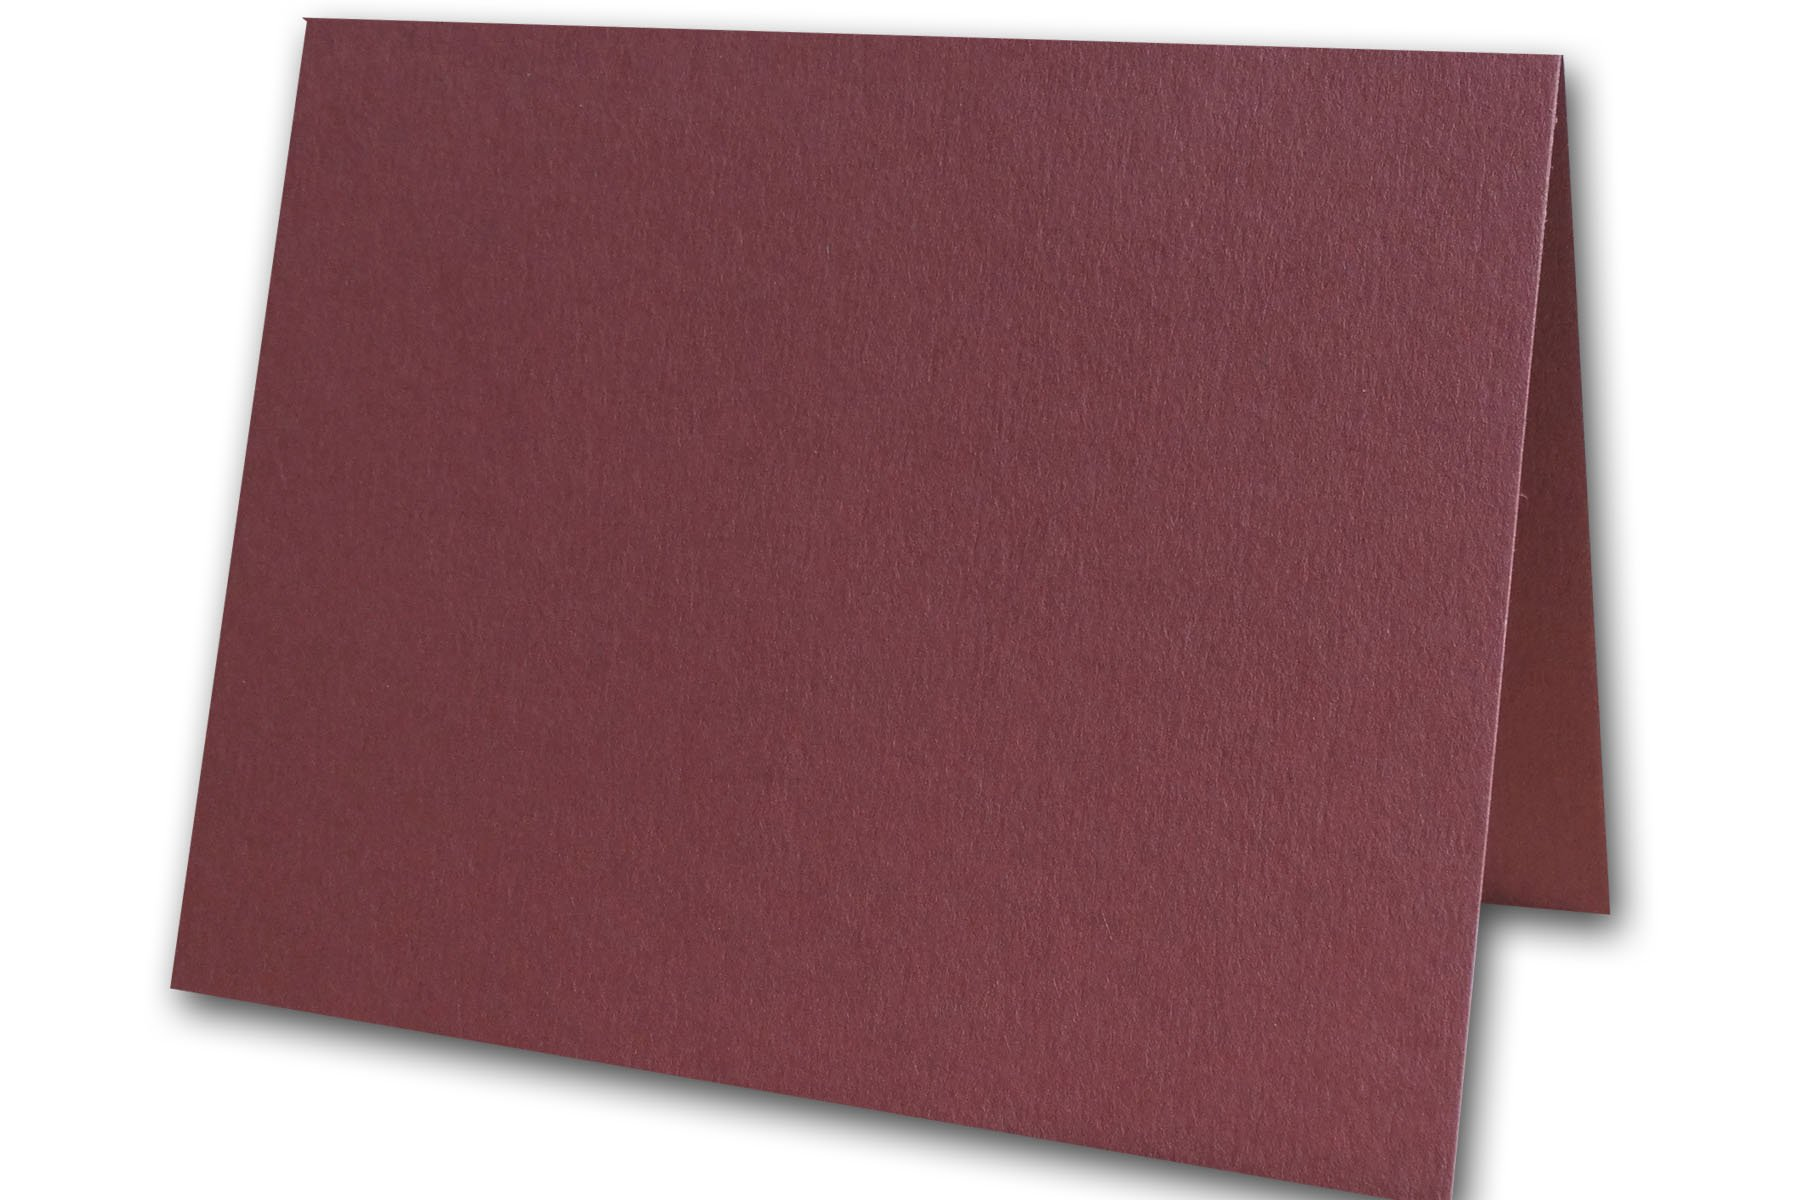 Blank Colorful Place Cards Tent Cards | Size 3.5'' x 5'' Flat 2.5'' x 3.5'' Folded (50, Burgundy) by CutCardStock